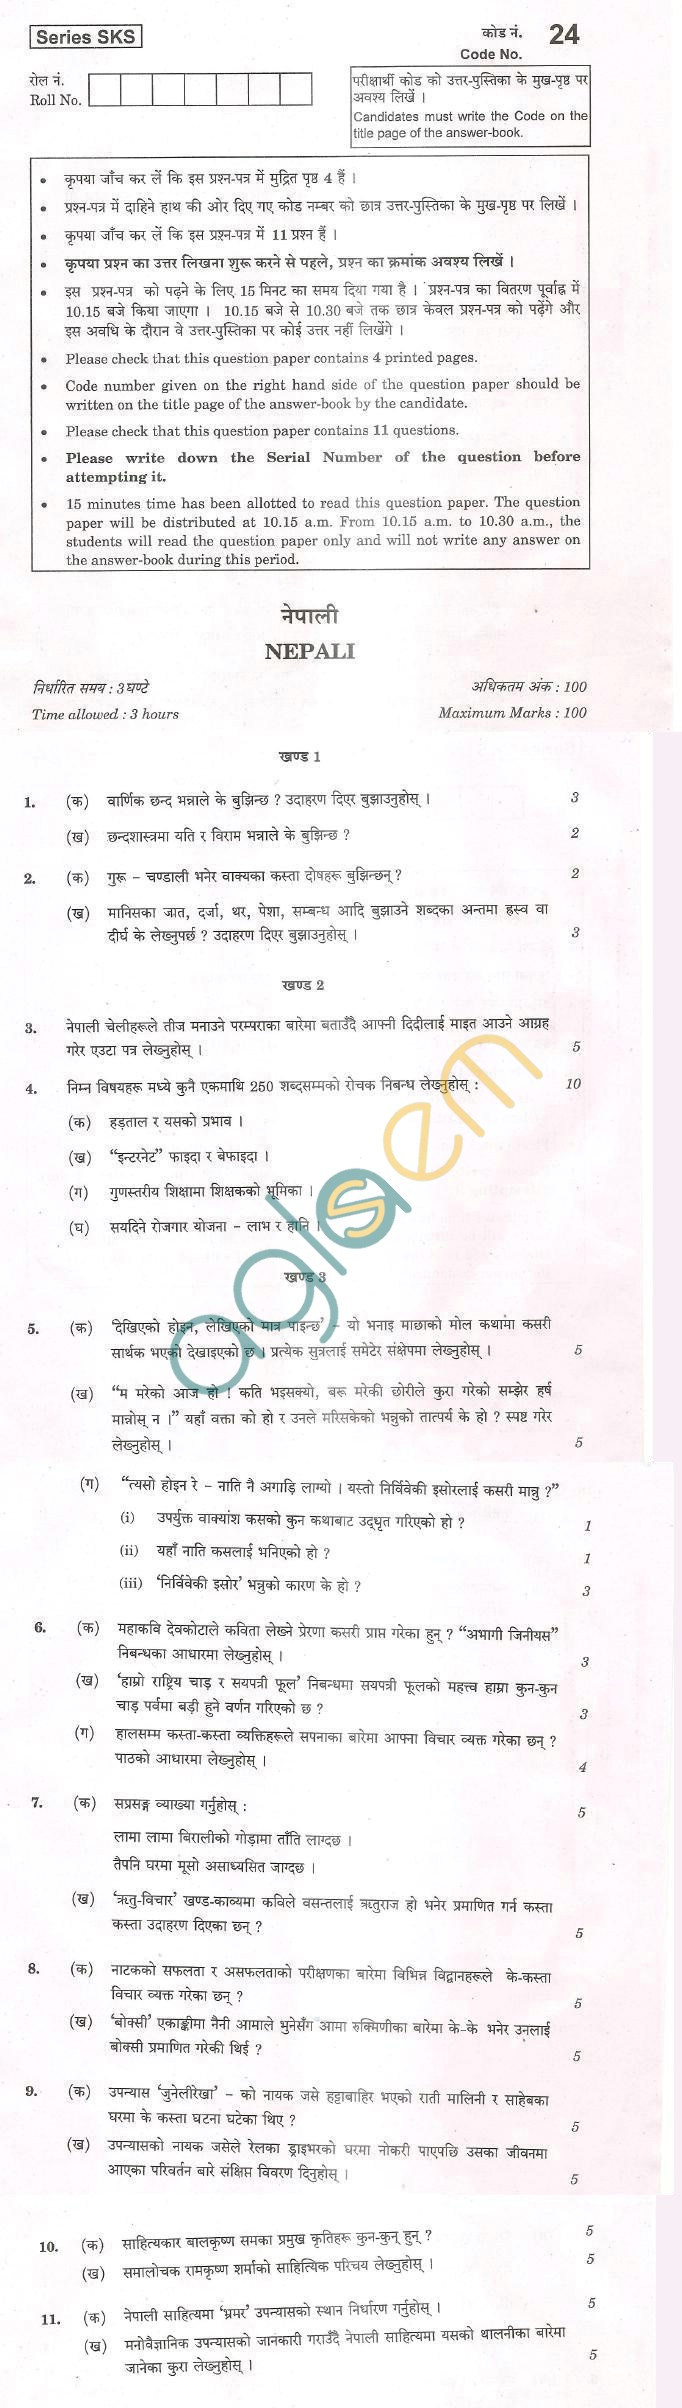 CBSE Board Exam 2013 Class XII Question Paper - Nepali